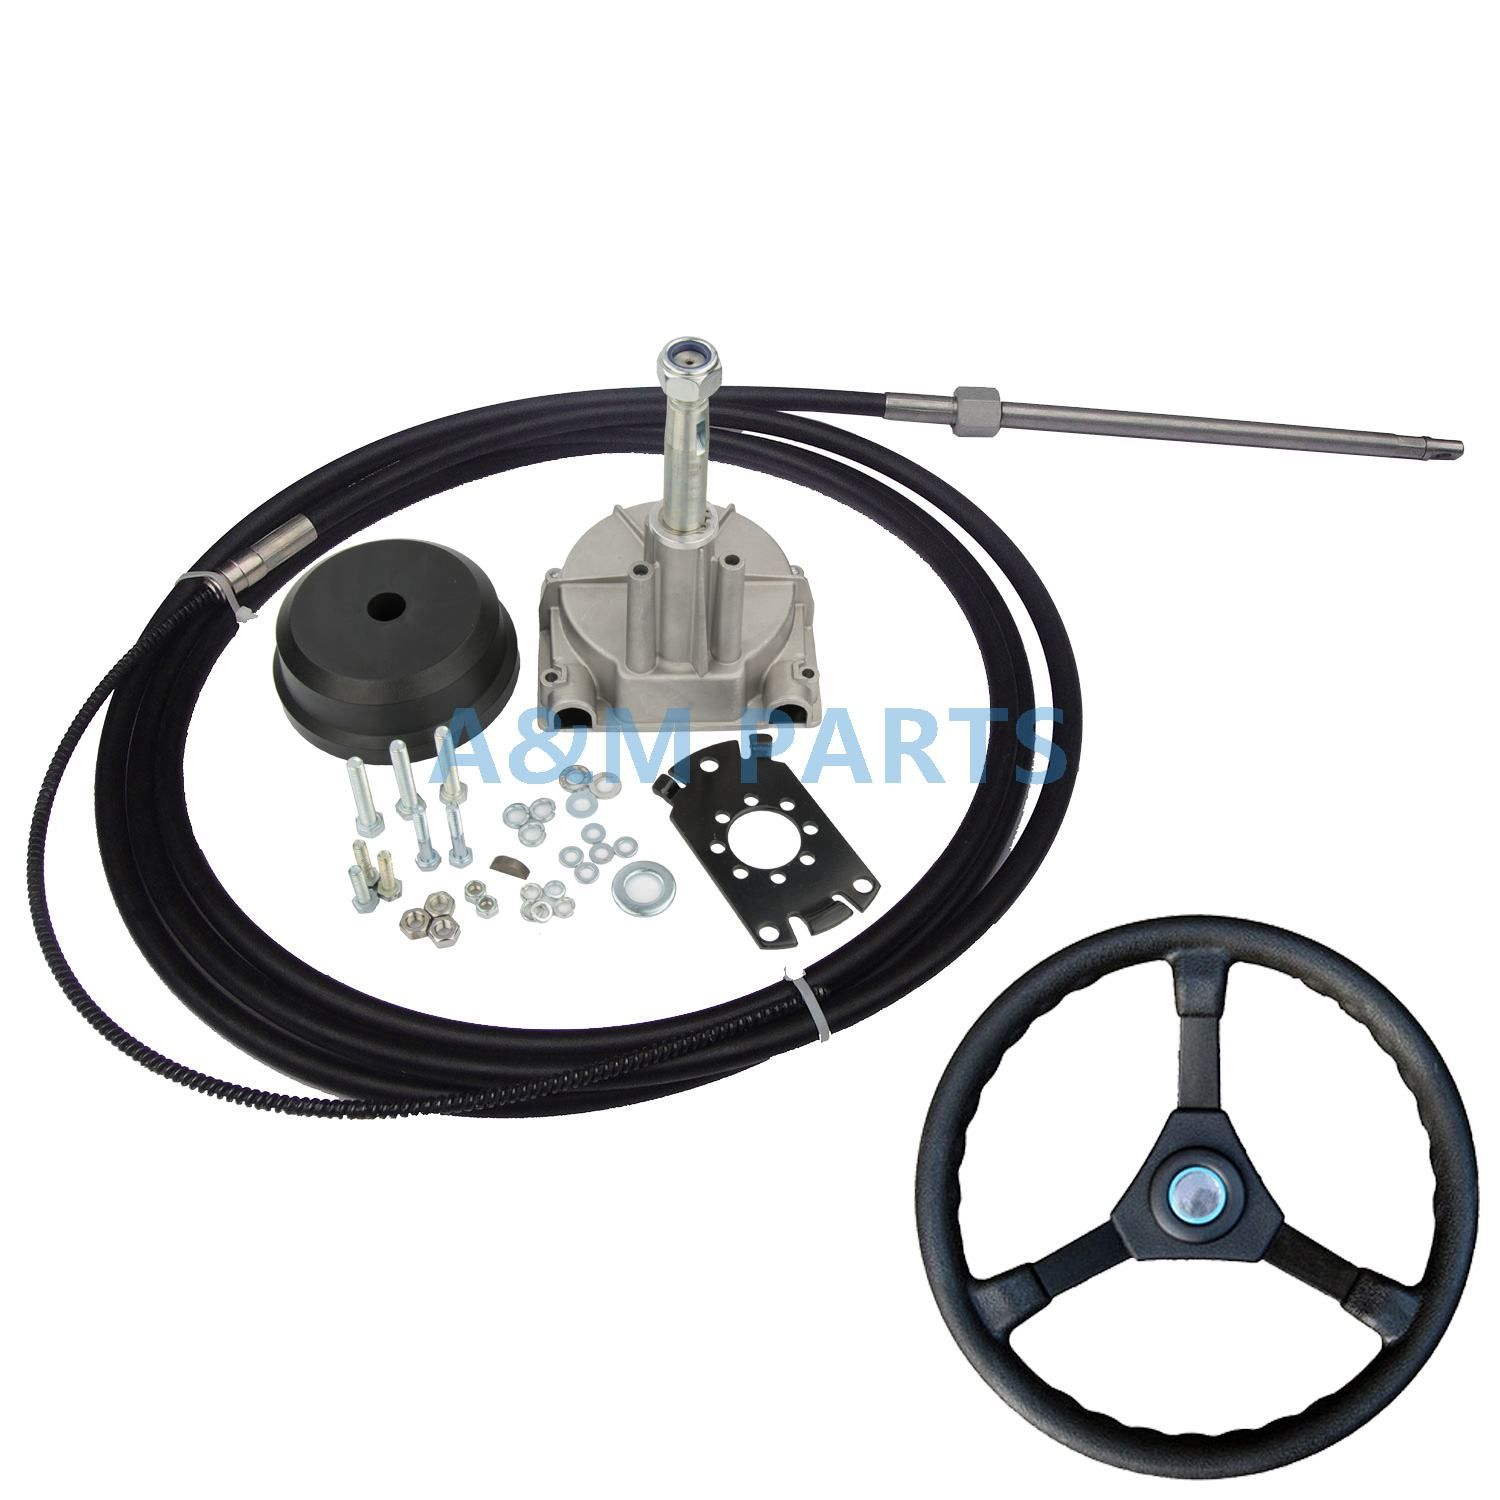 14FT Boat Steering System Single Turbine Rotating W/ Marine Steering Wheel Cable